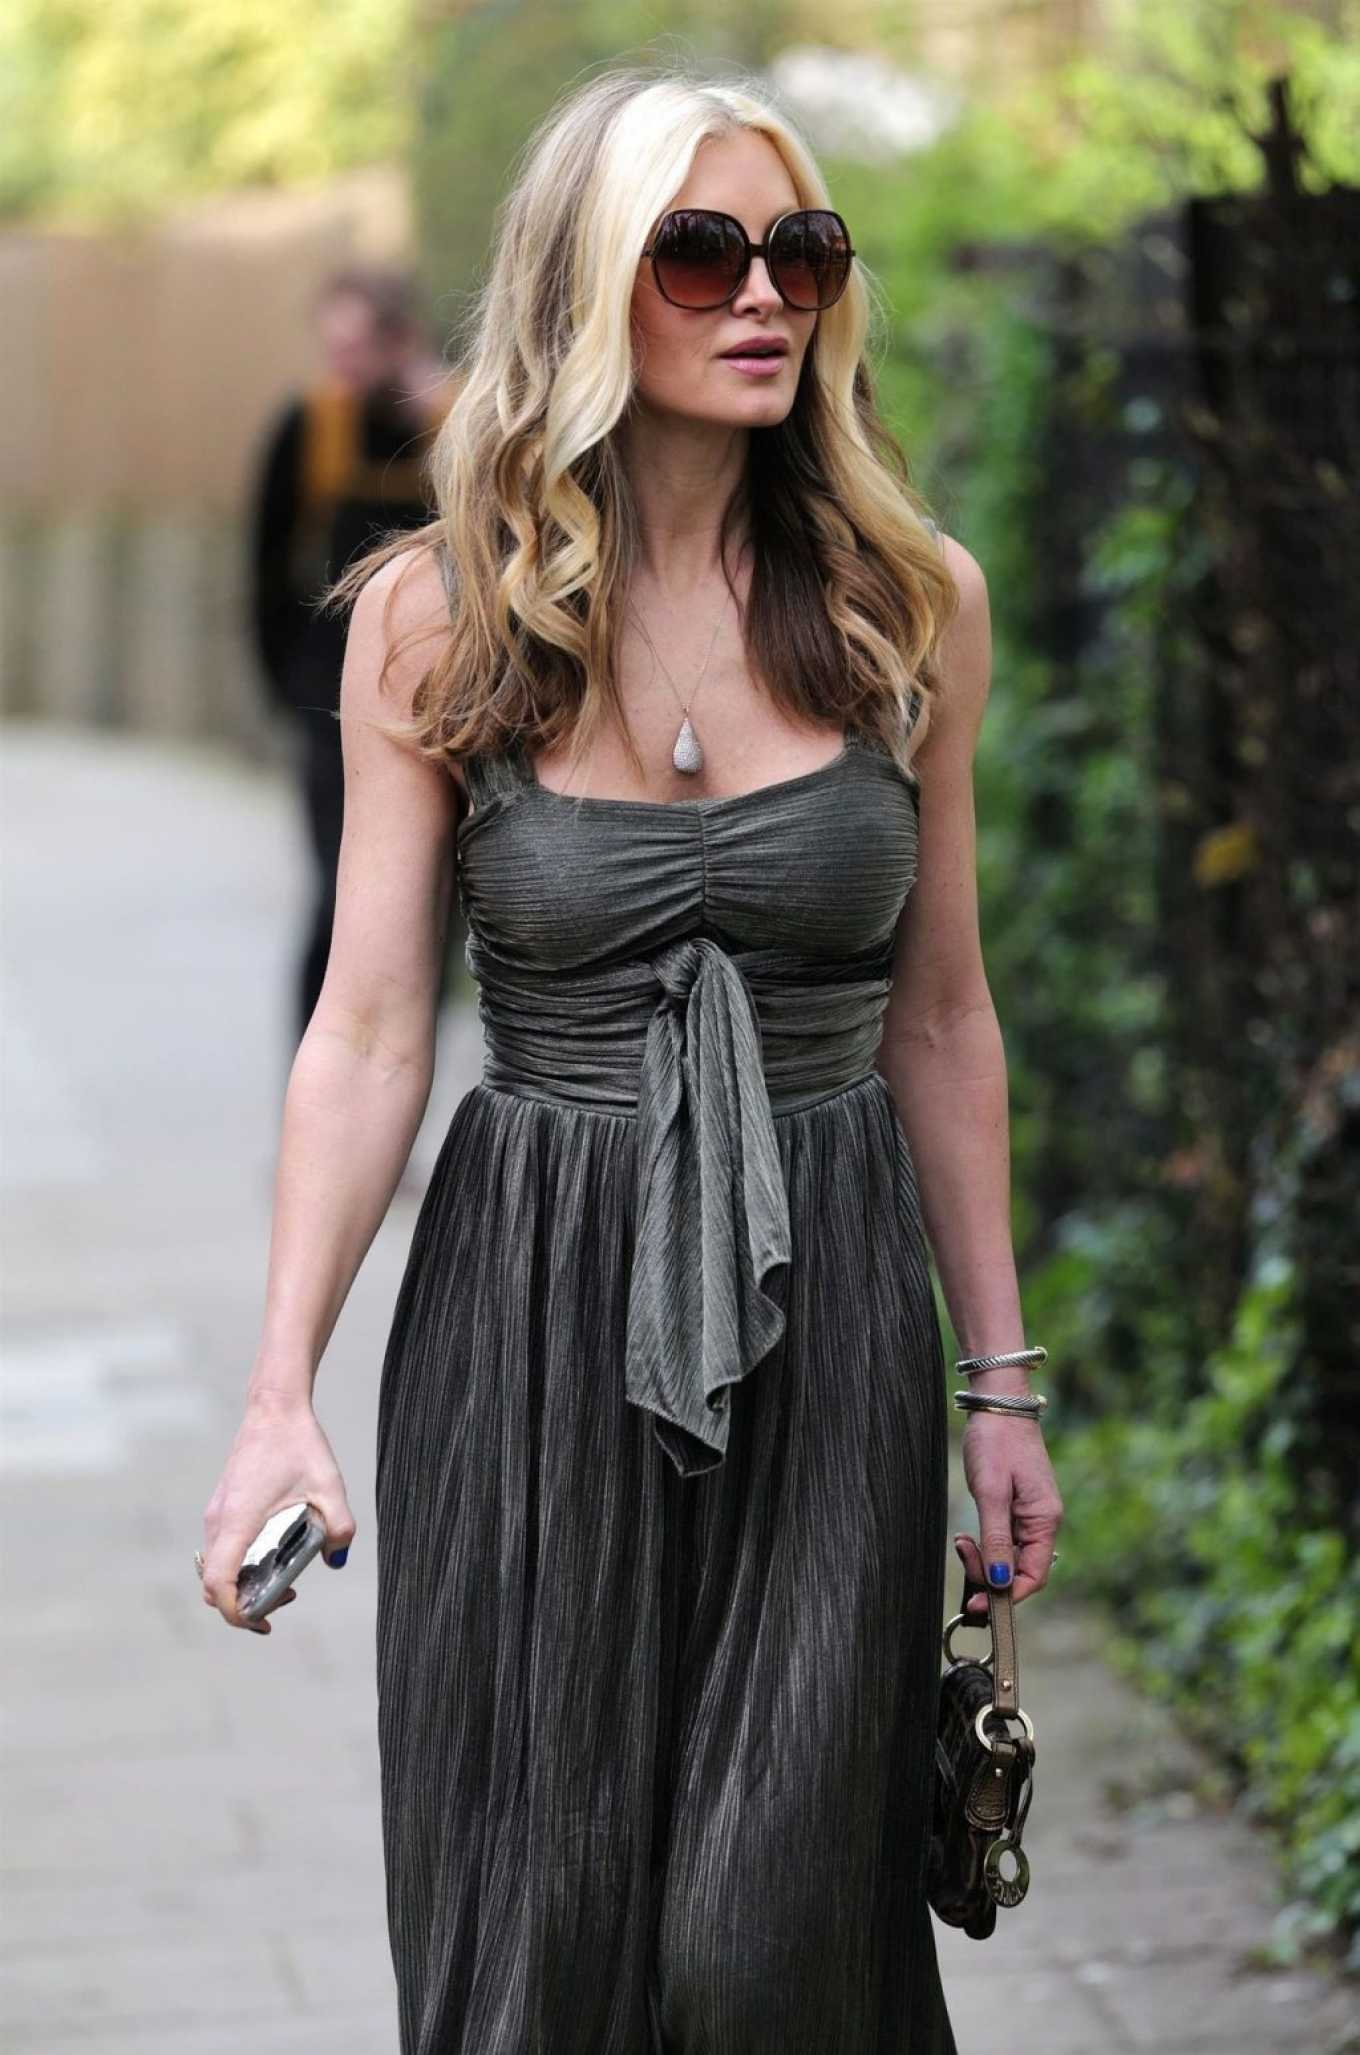 Caprice Bourret 2020 : Caprice Bourret – Out in London-12